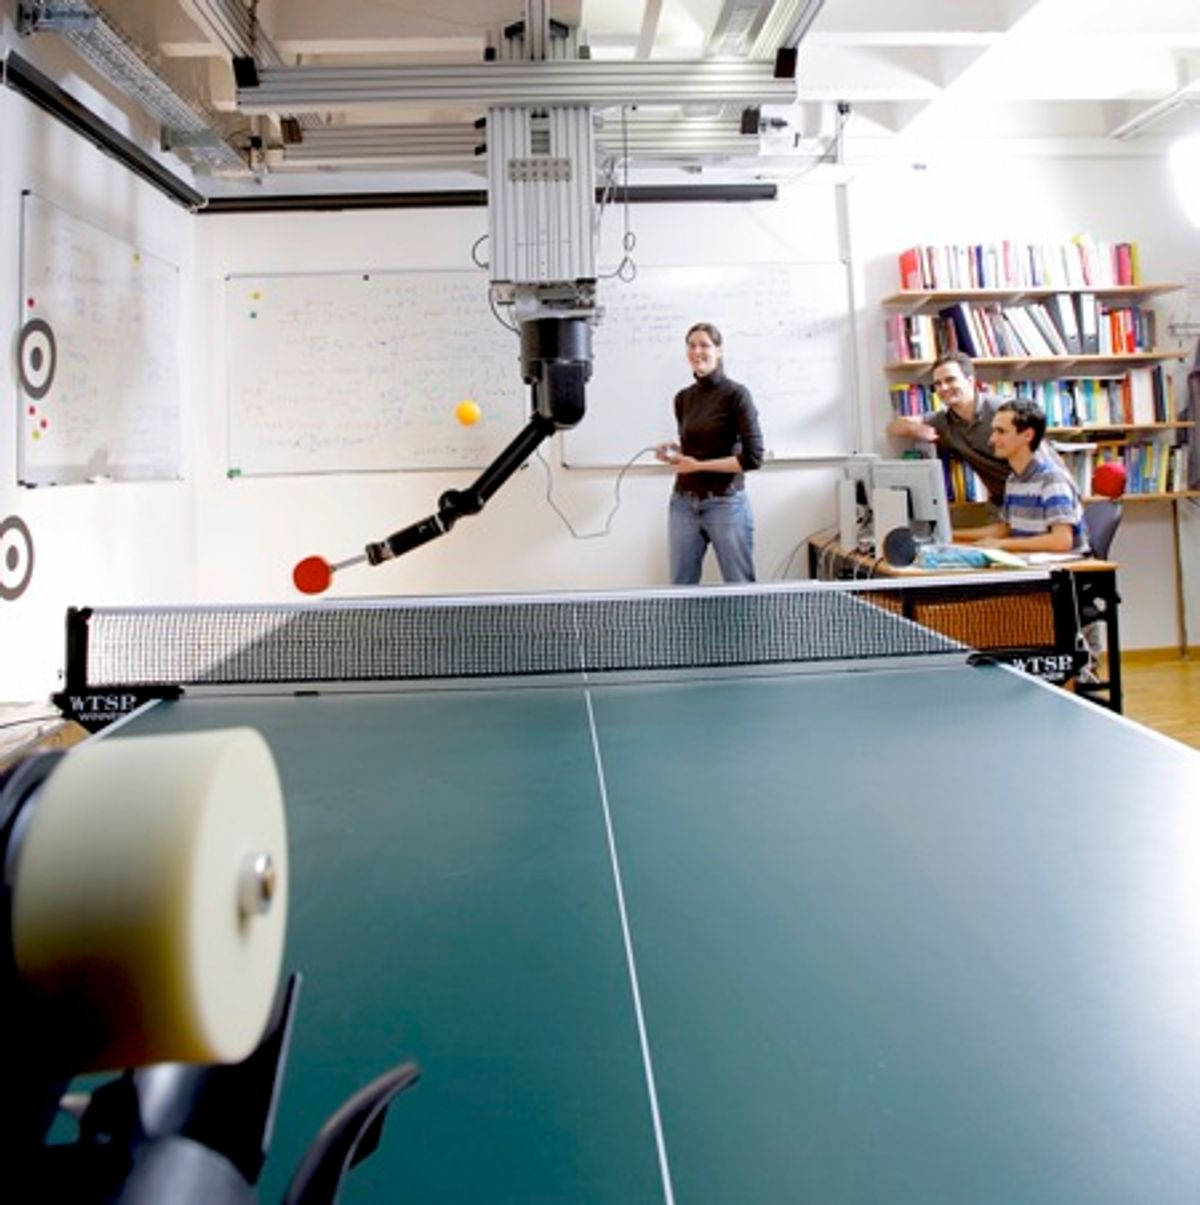 Ping Pong Robot Learns by Doing